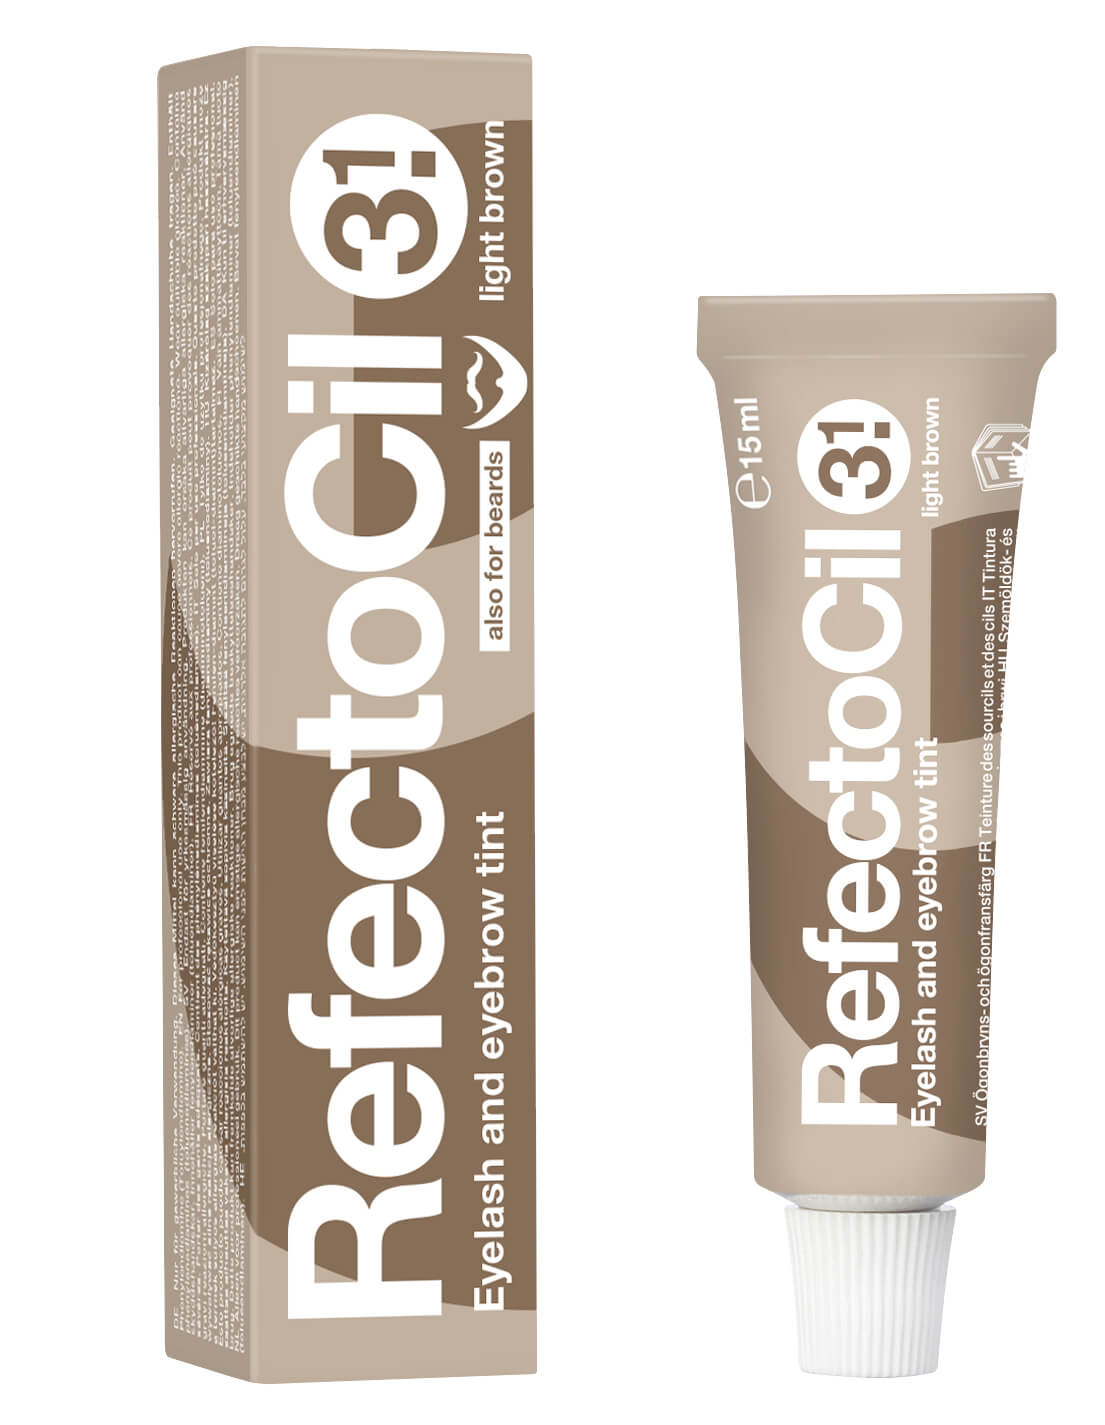 RefectoCil Szempilla- és szemöldökfesték 3.1 (Light Brown) 15 ml